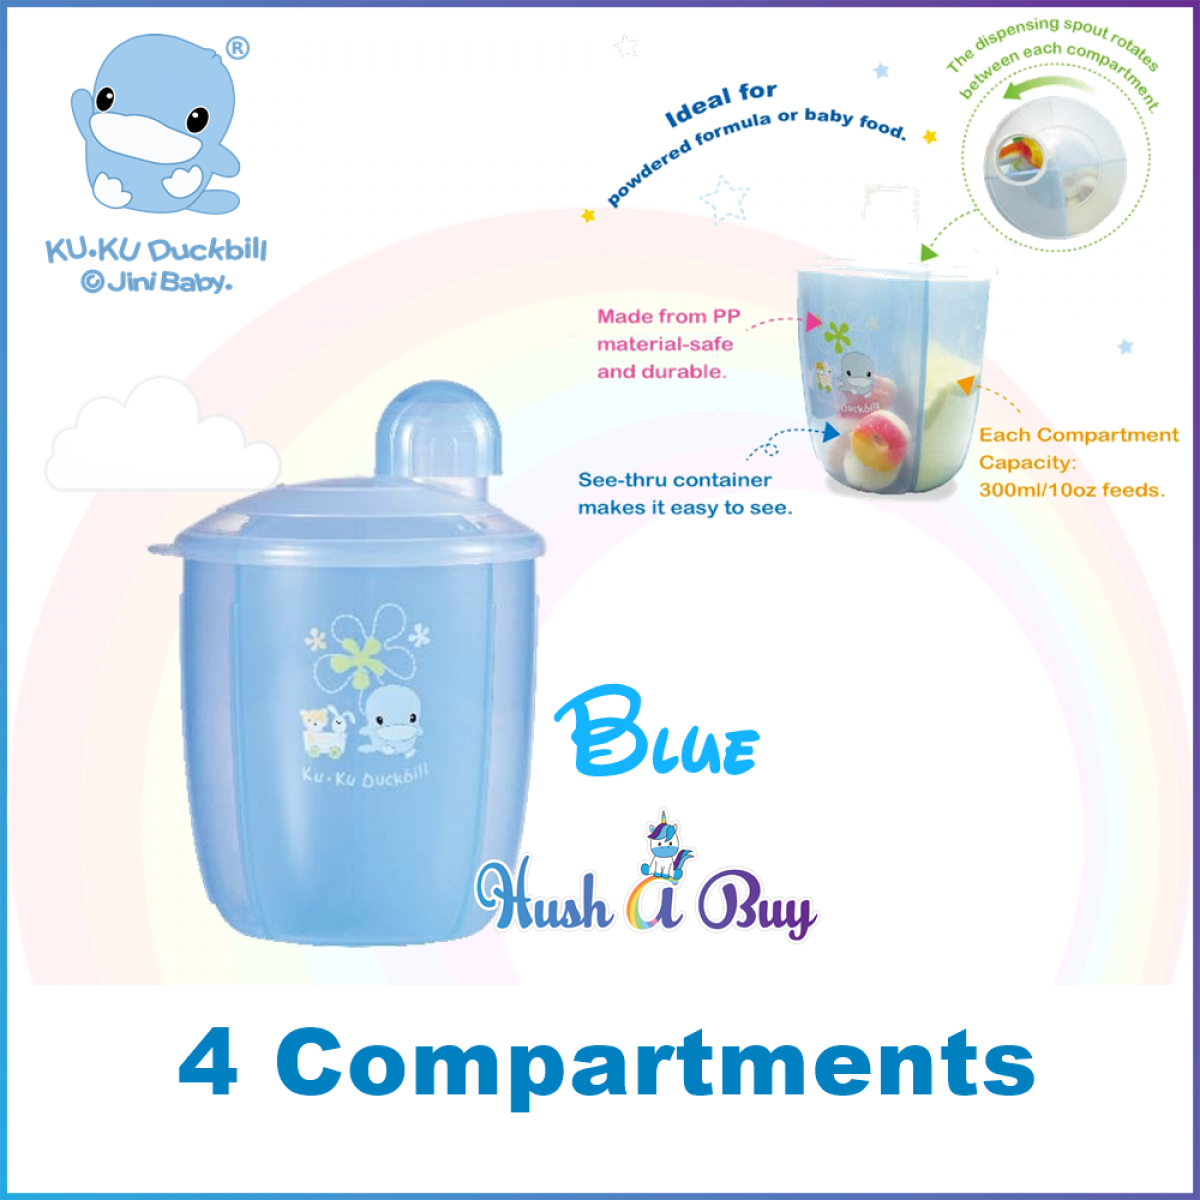 Kuku Duckbill Multipuurpose Milk Powder Dispenser or Container